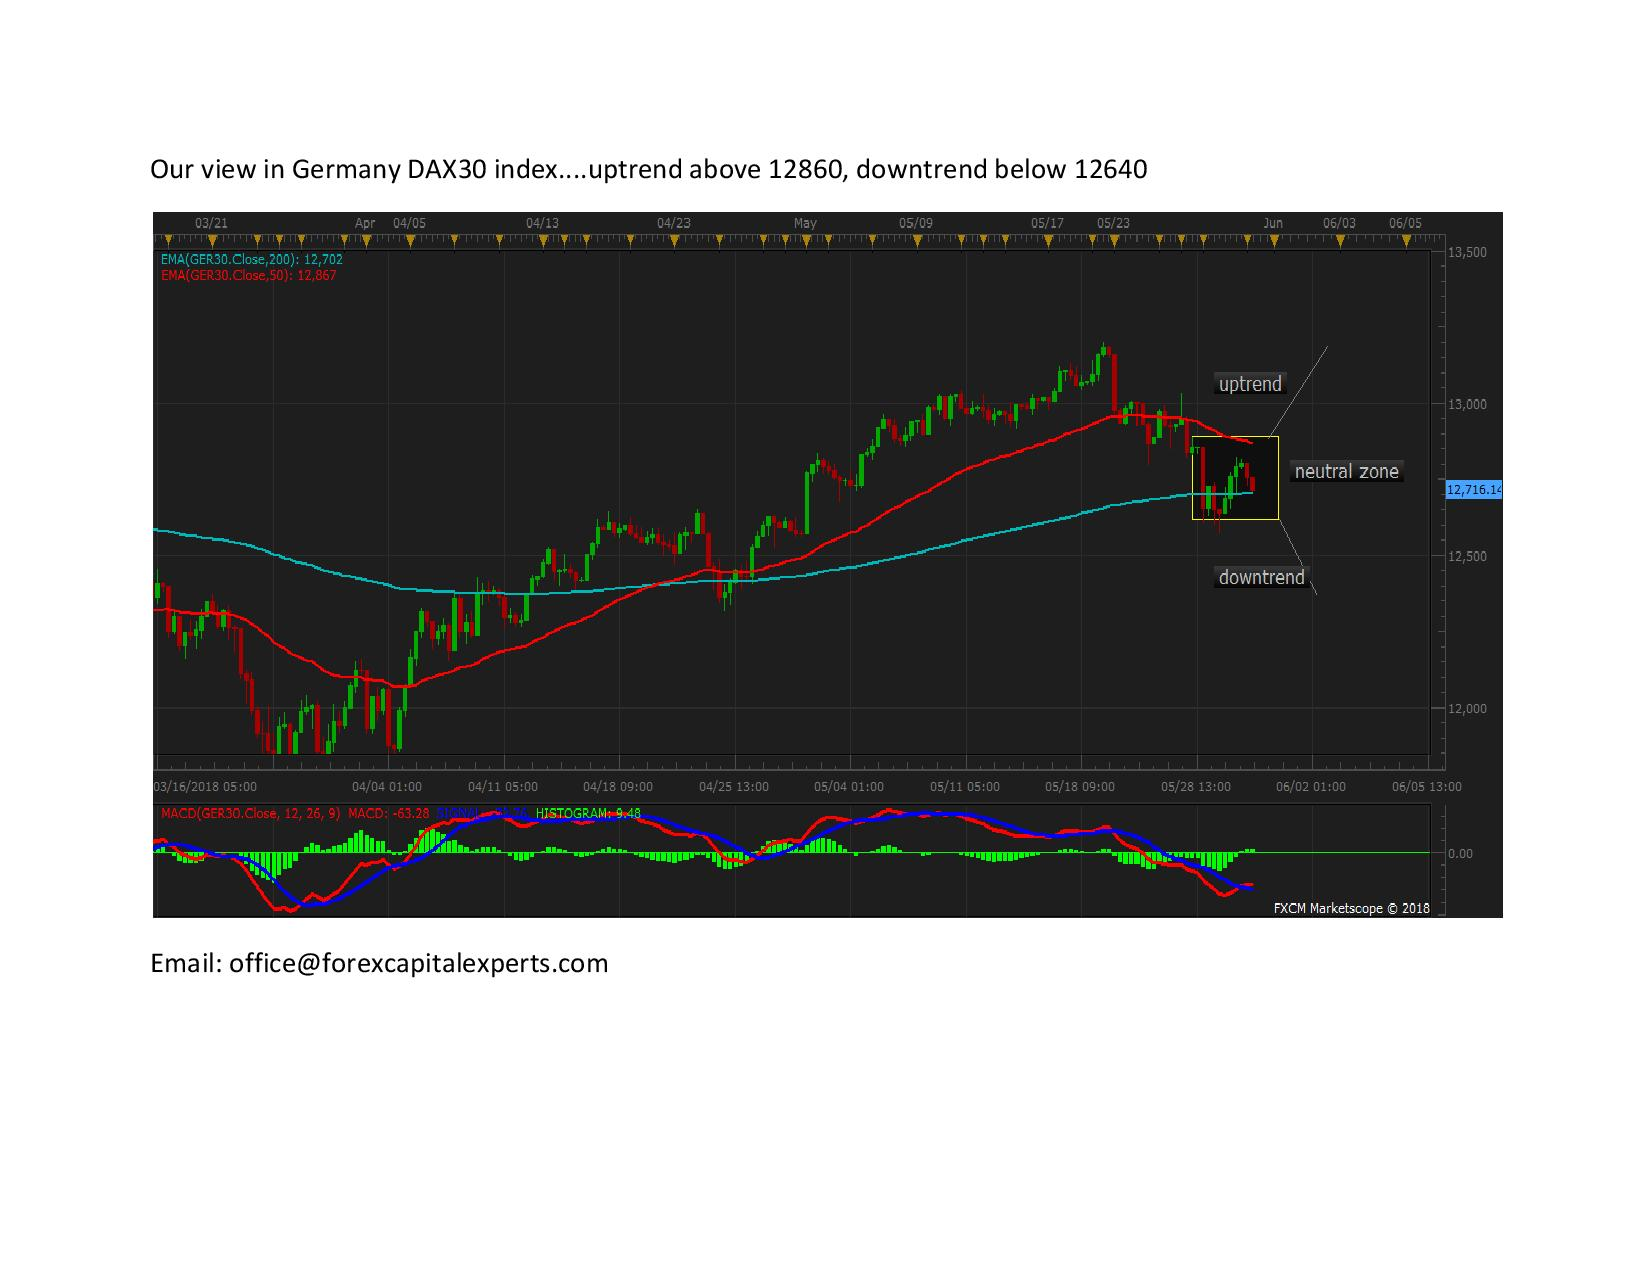 Our view in Germany DAX30 index page 001